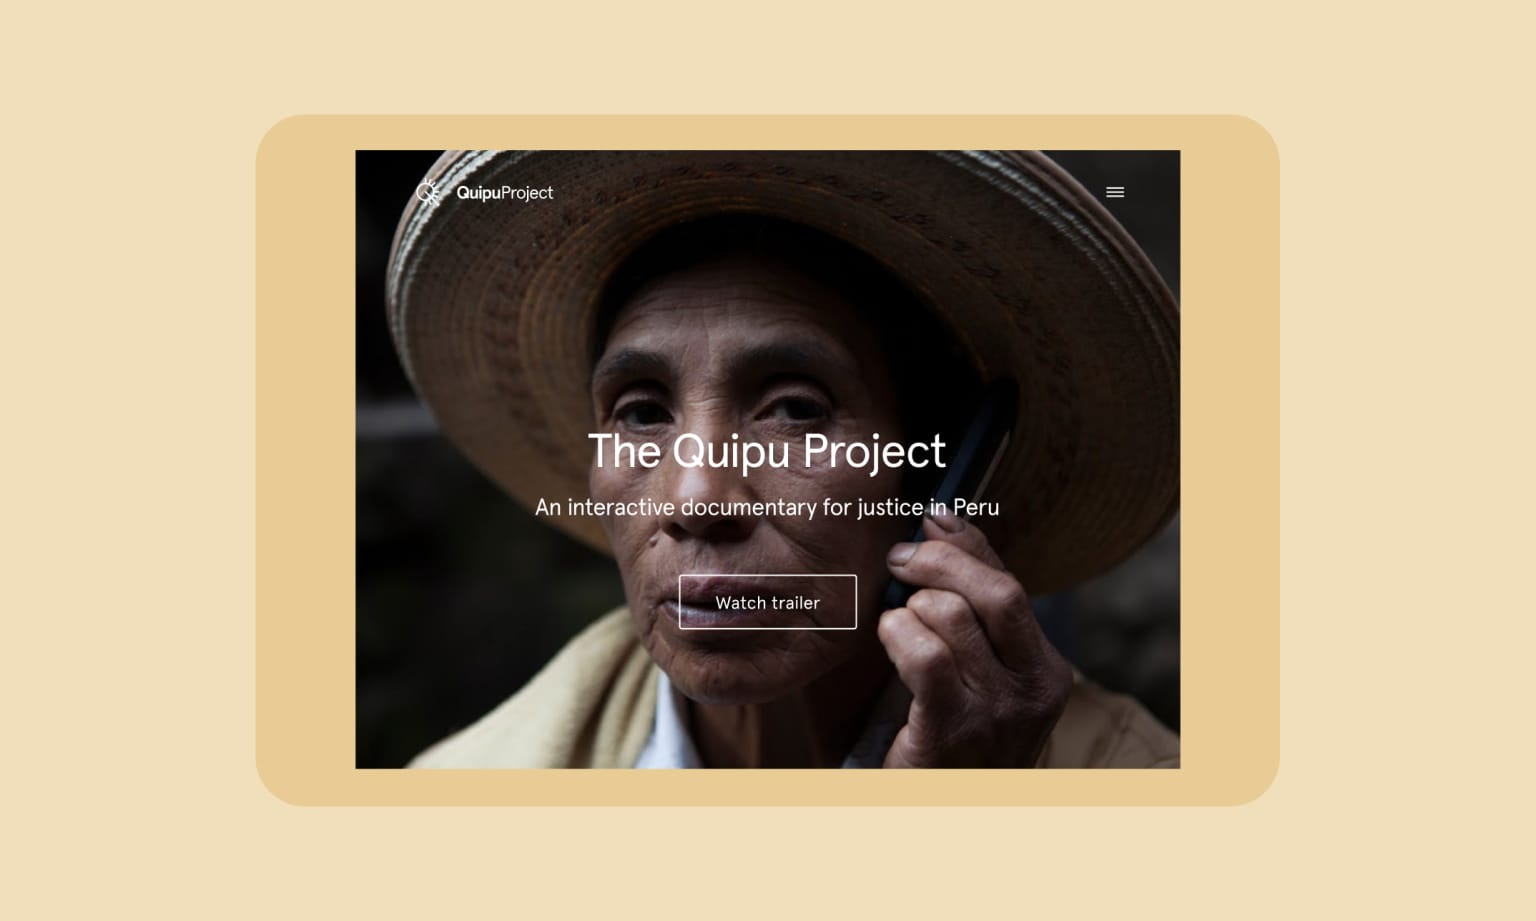 The Quipu project